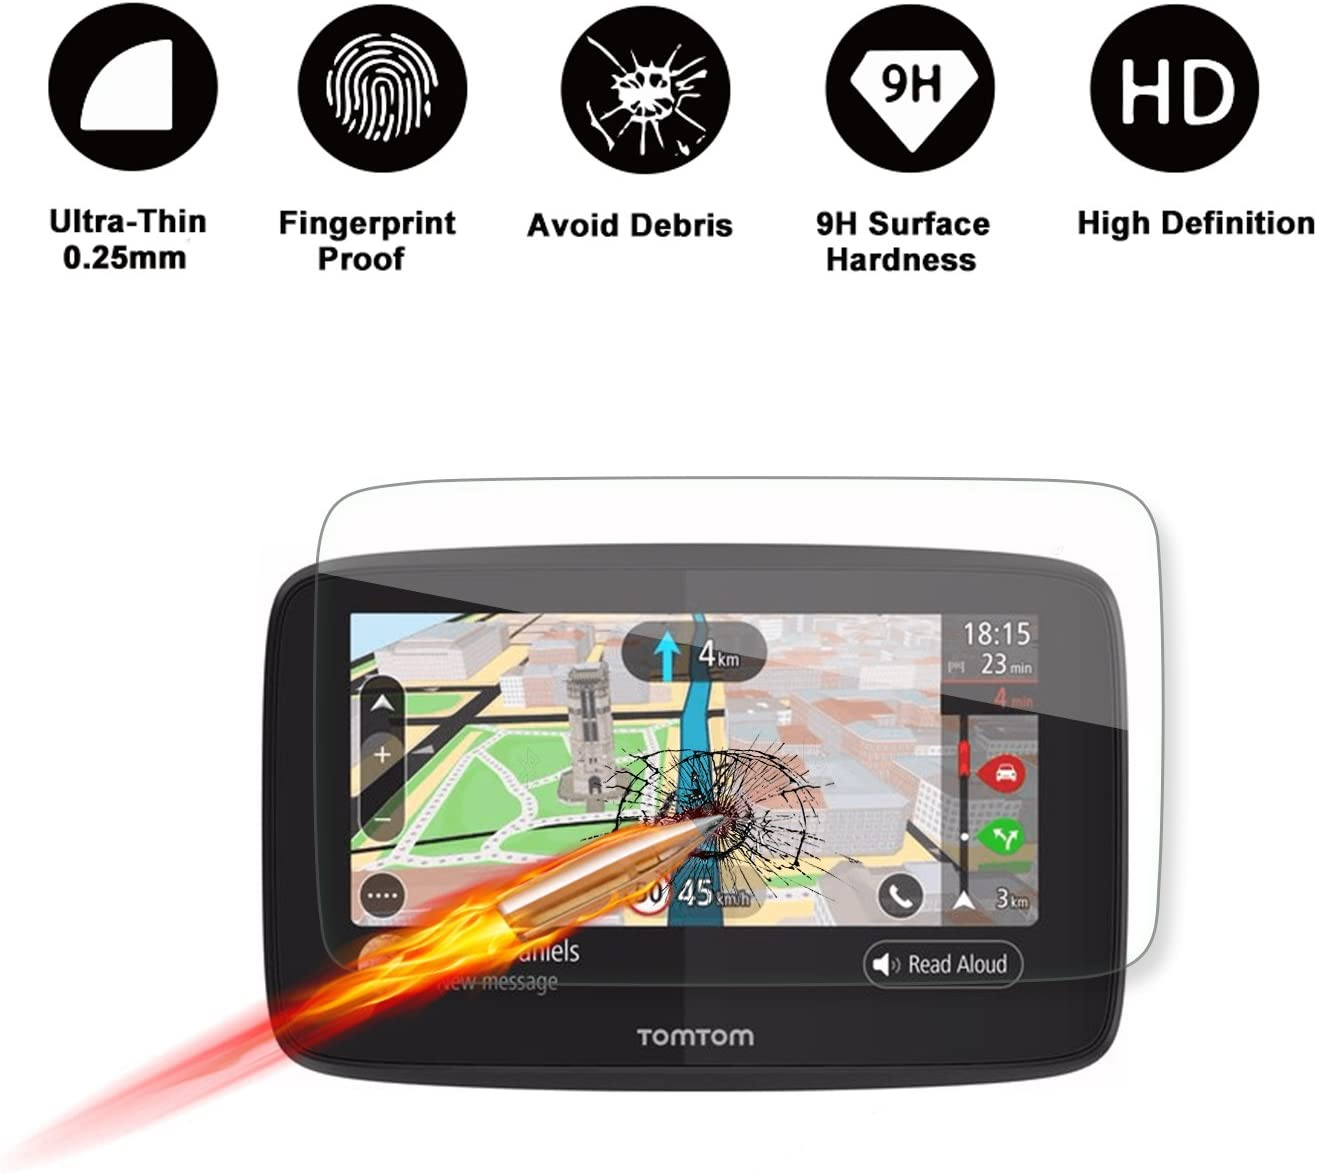 Special Brand Cheap Sale Venue for Tomtom GO 520 5200 Max 74% OFF Navigation GPS Display 5-Inch Scr